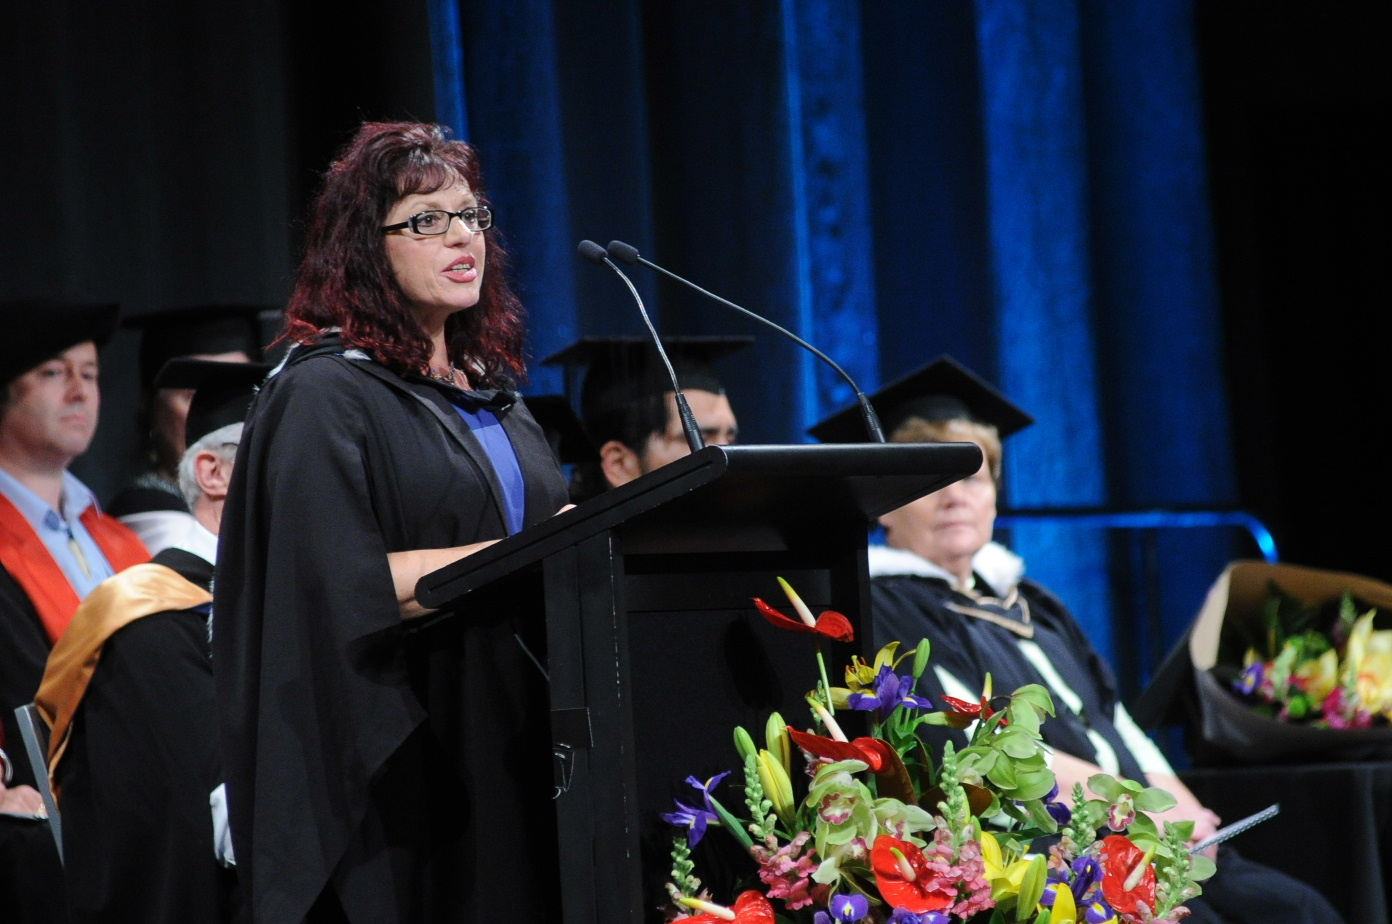 When Waiheke Islands Mariette Dodd began her psychology studies with Open Polytechnic during one of the most challenging times of her life she never imagined that it would ignite a fierce passion for learning.